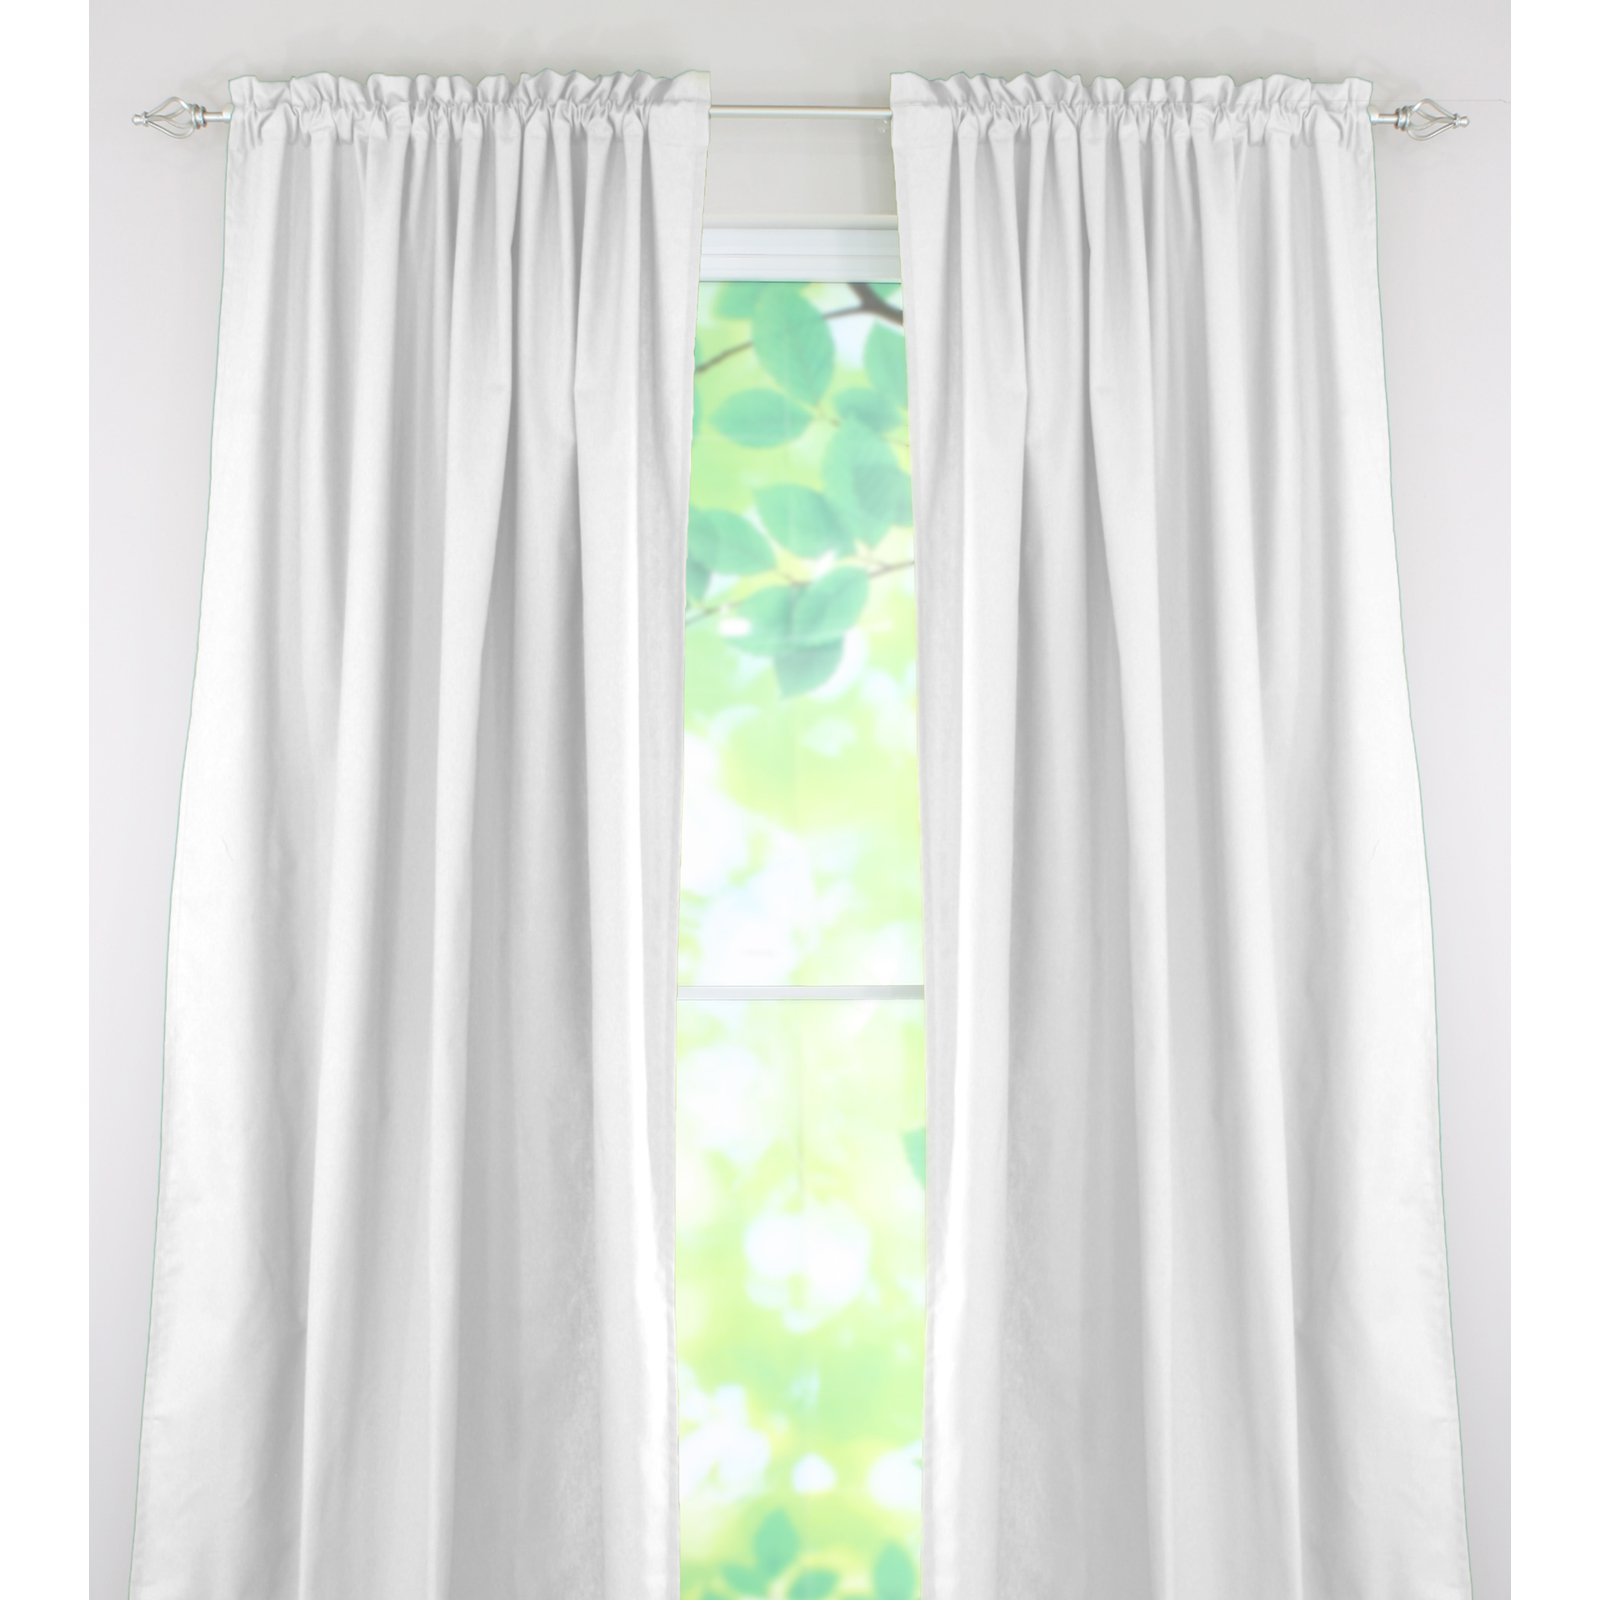 Brite Ideas Living Duck Black Rod Pocket Curtain Panel